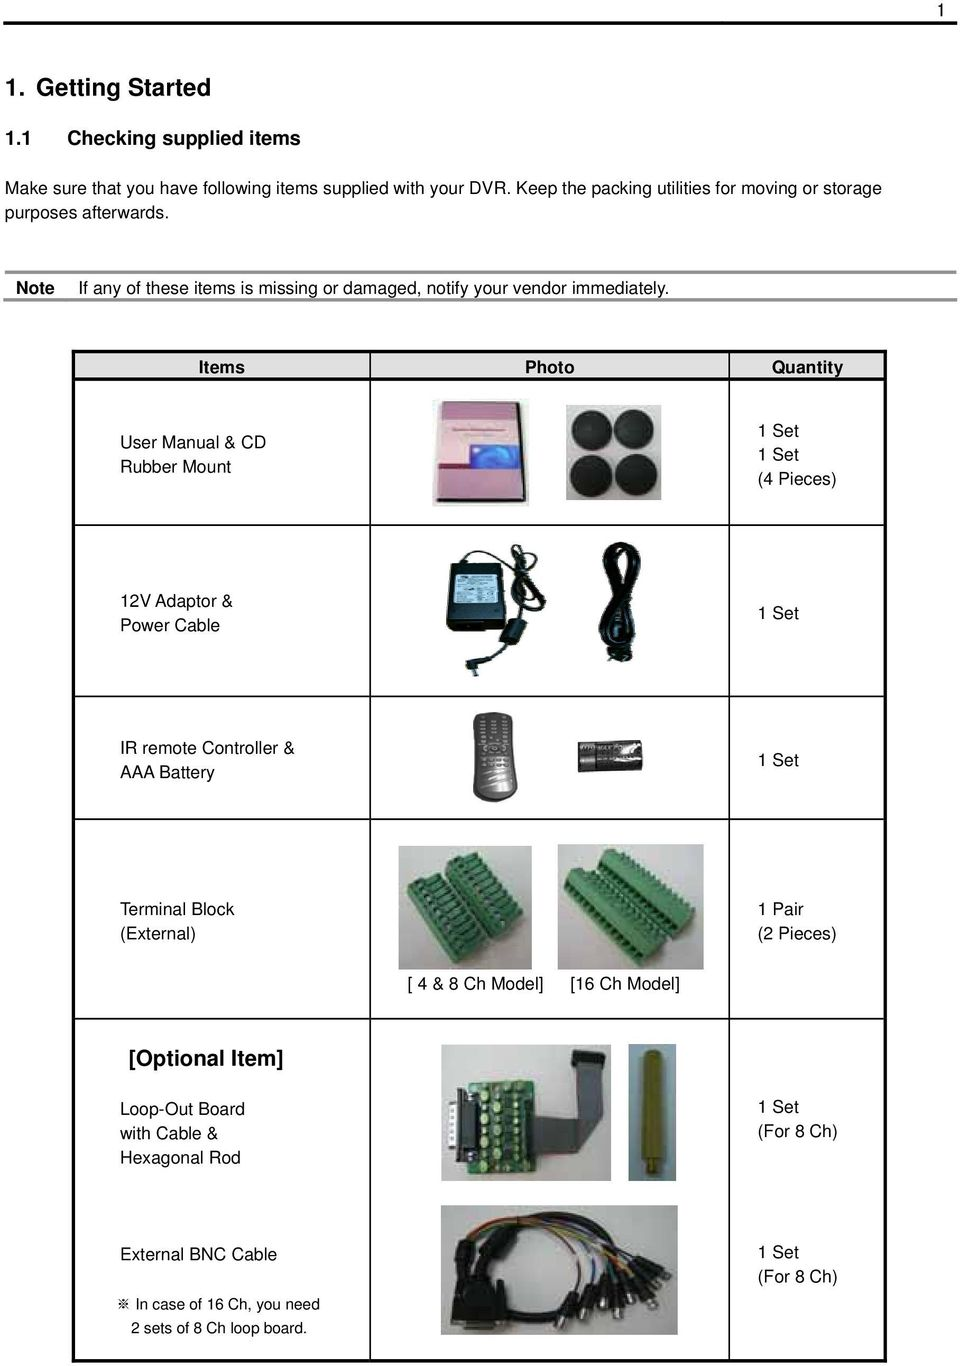 Items Photo Quantity User Manual & CD Rubber Mount 1 Set 1 Set (4 Pieces) 12V Adaptor & Power Cable 1 Set IR remote Controller & AAA Battery 1 Set Terminal Block